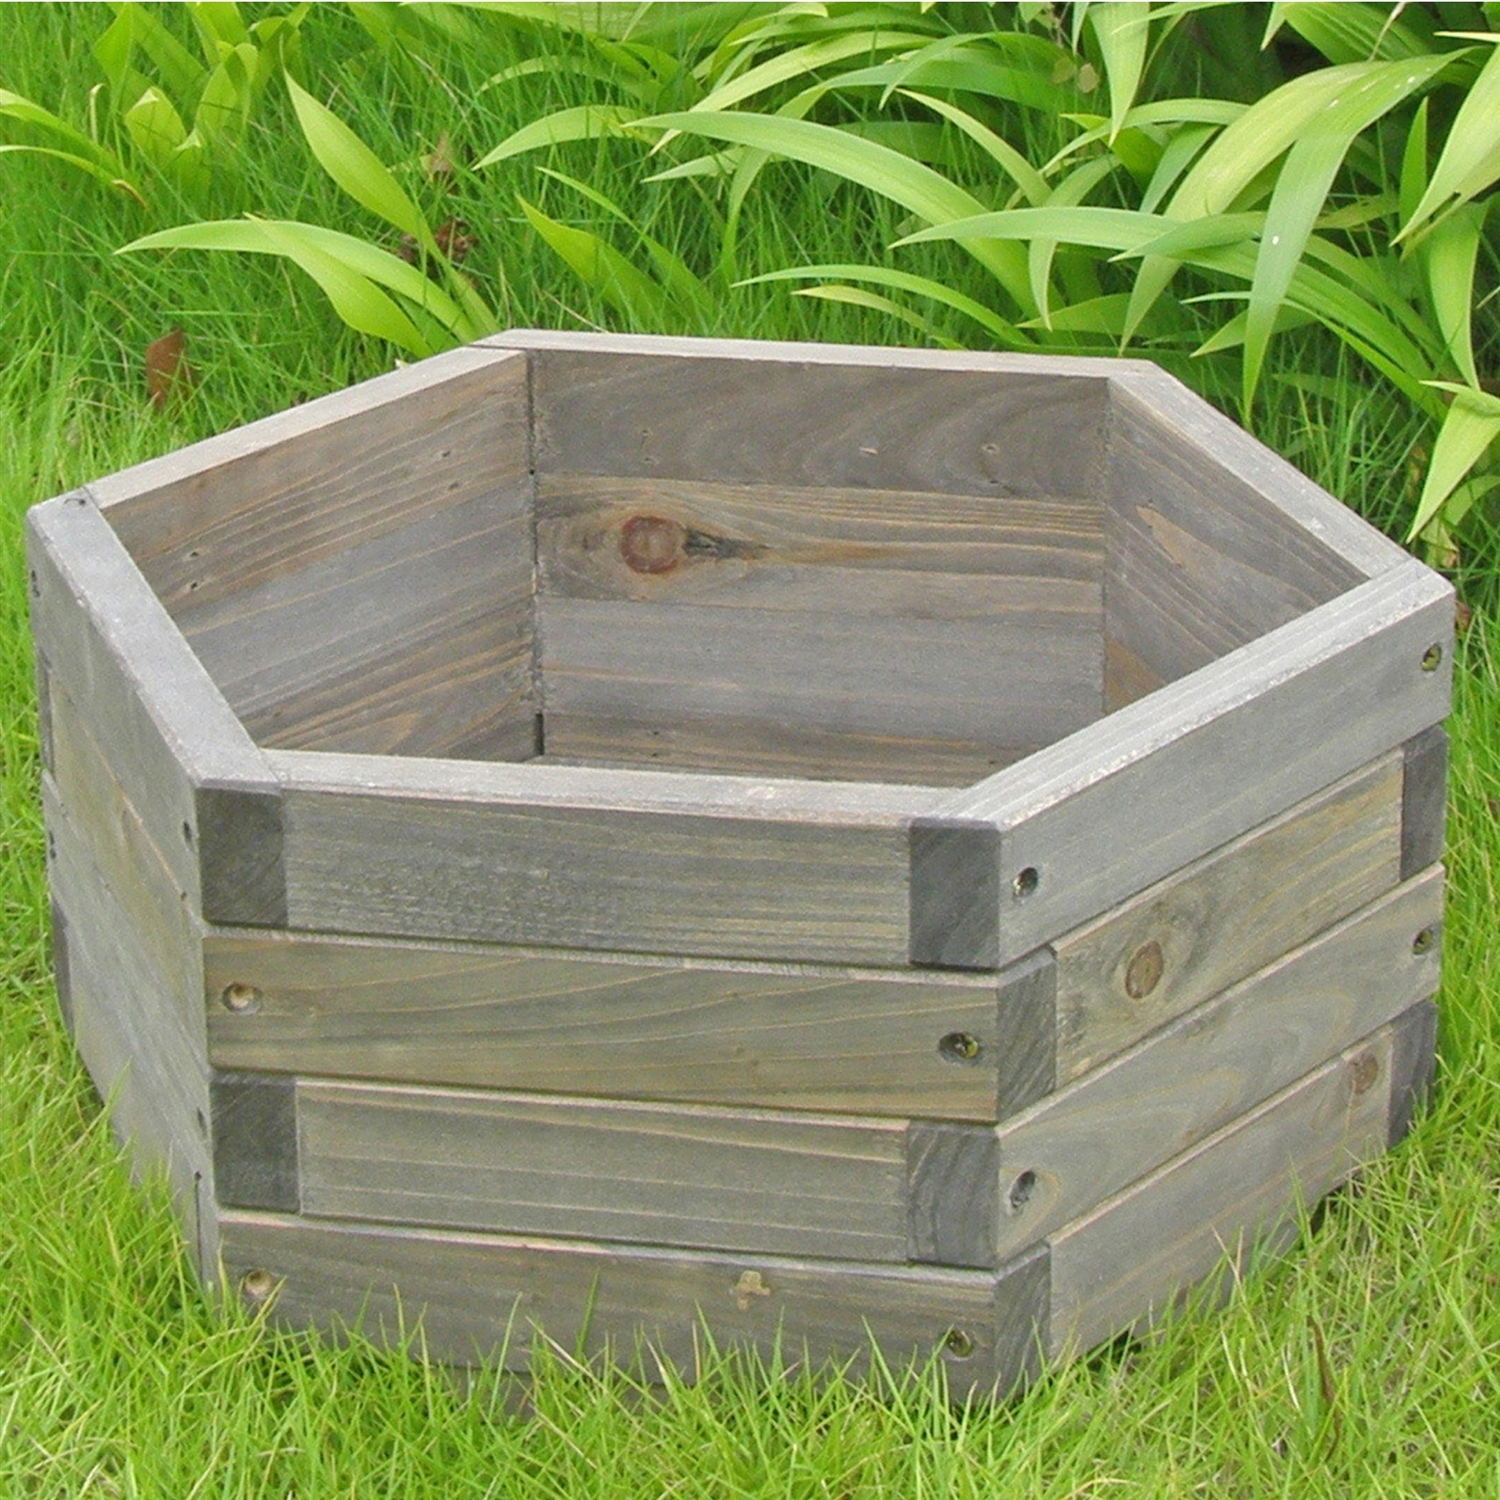 Small 16 x 16 x 7-inch Hexagon Fir Wood Garden Planter Box, EXGBP3616 :  This Small 16 x 16 x 7-inch Hexagon Fir Wood Garden Planter Box would be a great addition to your home. It has a hexagon shaped garden barrel and is functional and practical. Made of Chinese fir which has the natural resistance to moisture, decay, and insect damage and is highly durable and scented; Functional and practical to use it indoors and out on patios, decks and lawns; Indoor Use: Yes Assembly Type: Assembly required; Product Warranty: 90 days warranty, Free of Manufacturer defects, free replacement for damaged parts within warranty terms Material: Chinese Fir; Drainage Holes: Yes Insect Resistant: Yes; Warp Resistant: Yes Rot Resistant: Yes; Distressed: Yes Recycled Content: 0%.